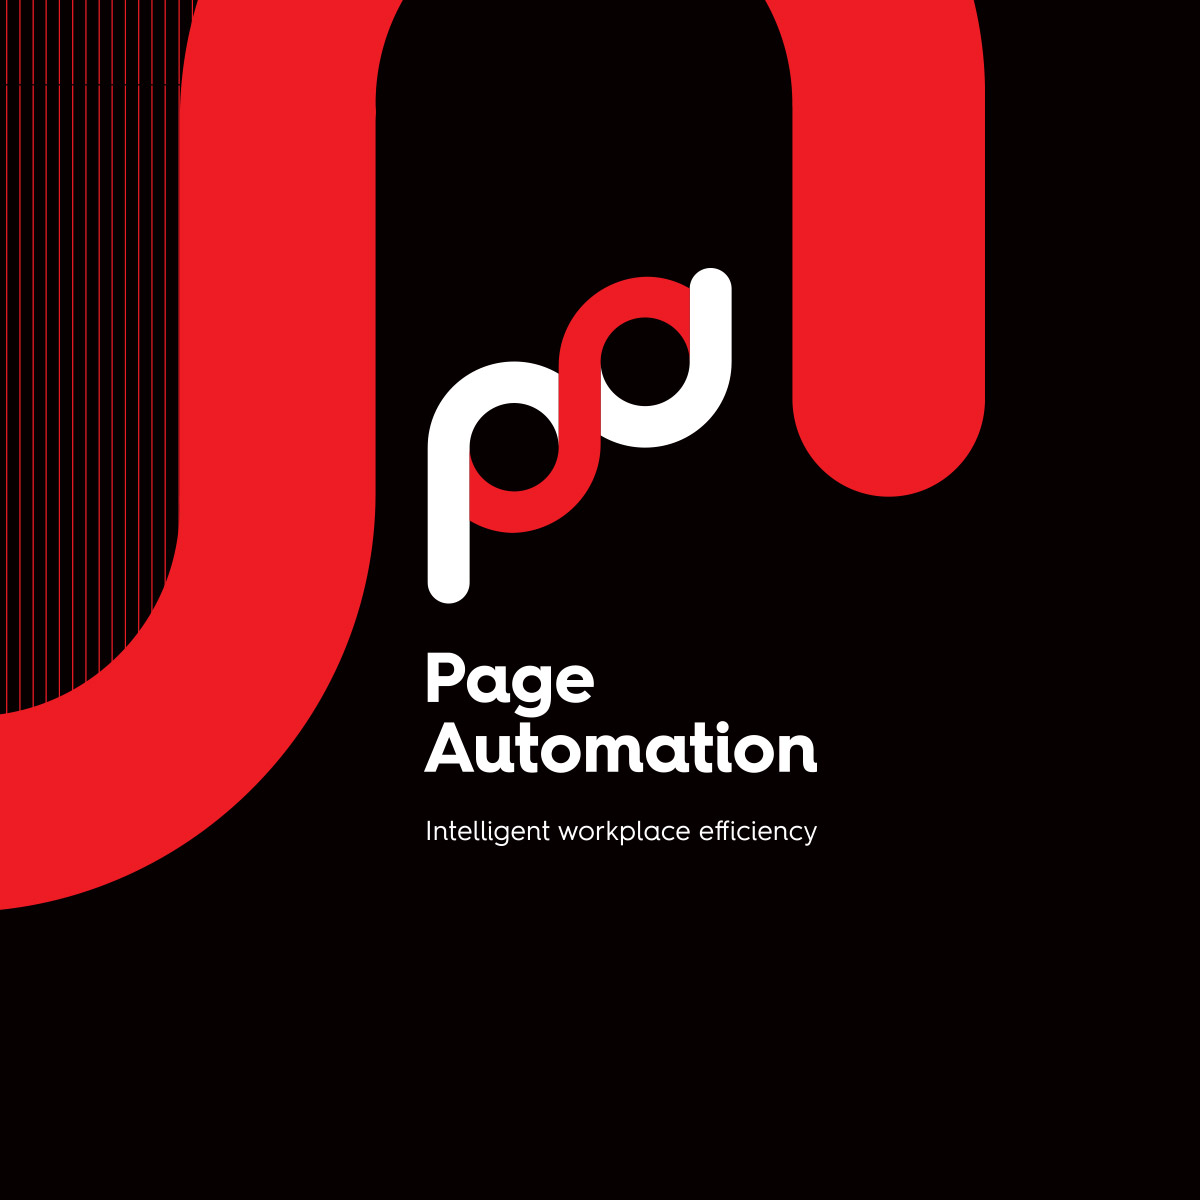 Page Automation